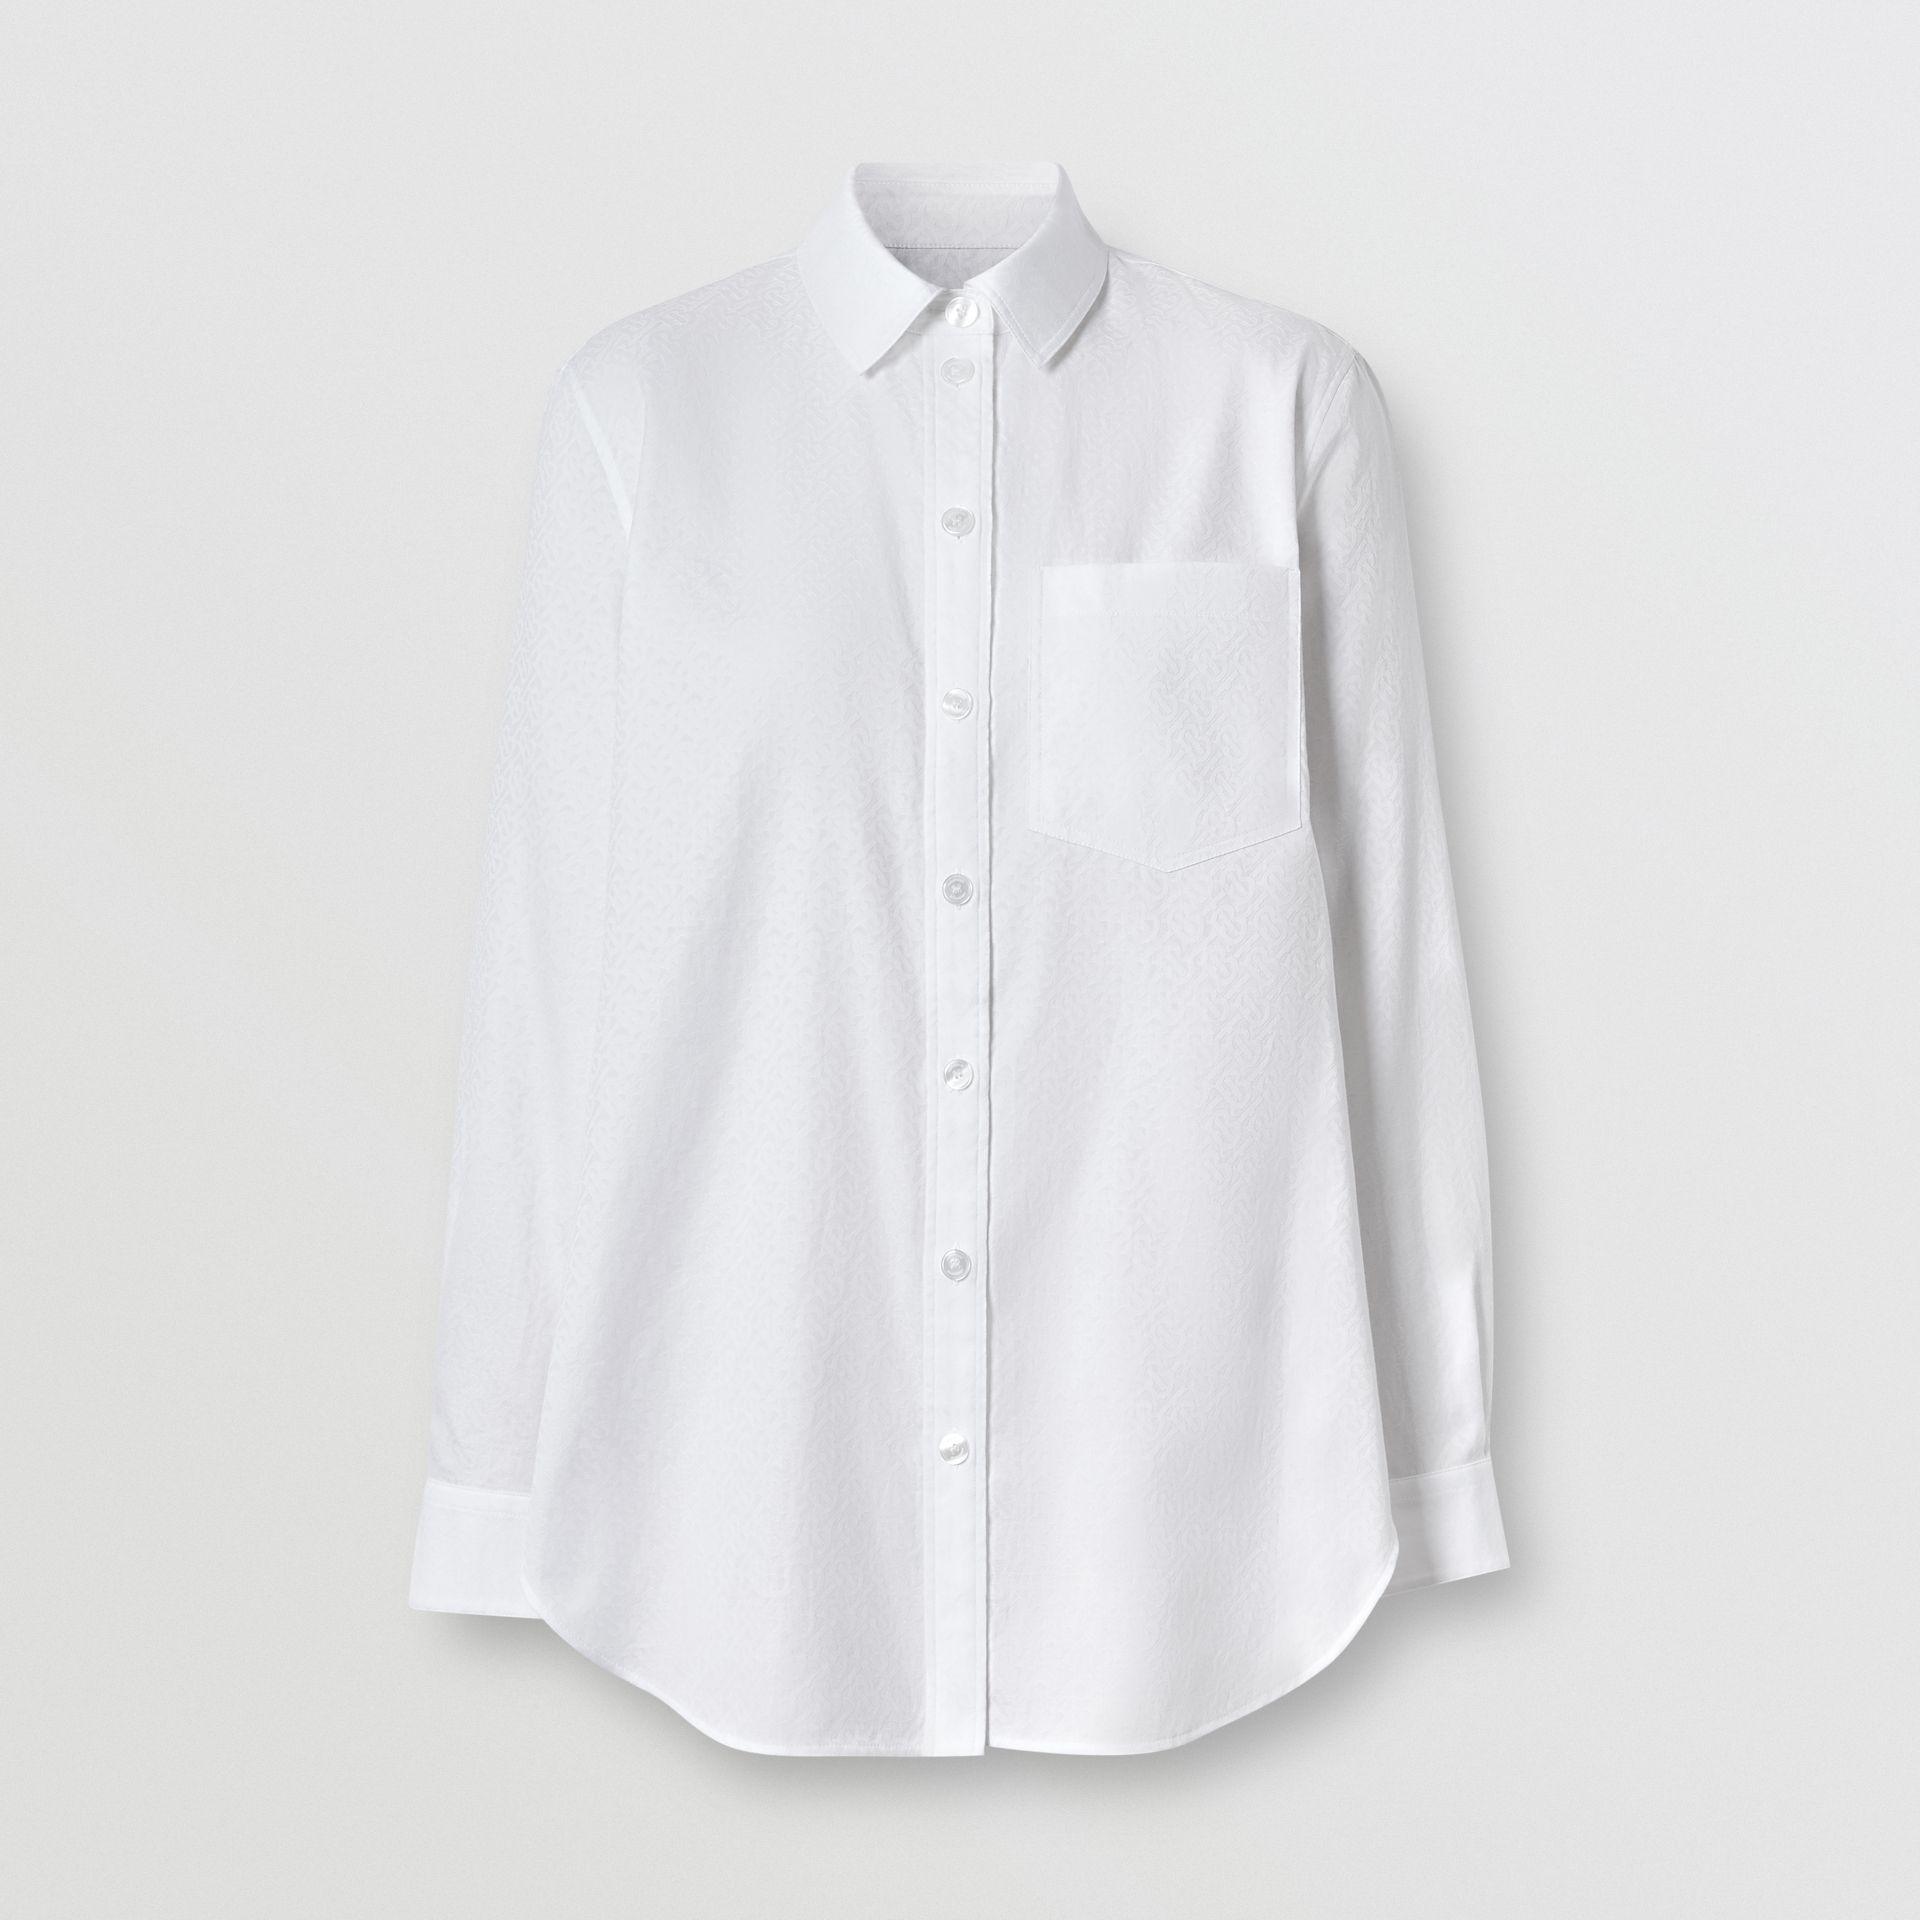 Monogram Cotton Jacquard Shirt in Optic White - Women | Burberry - gallery image 3